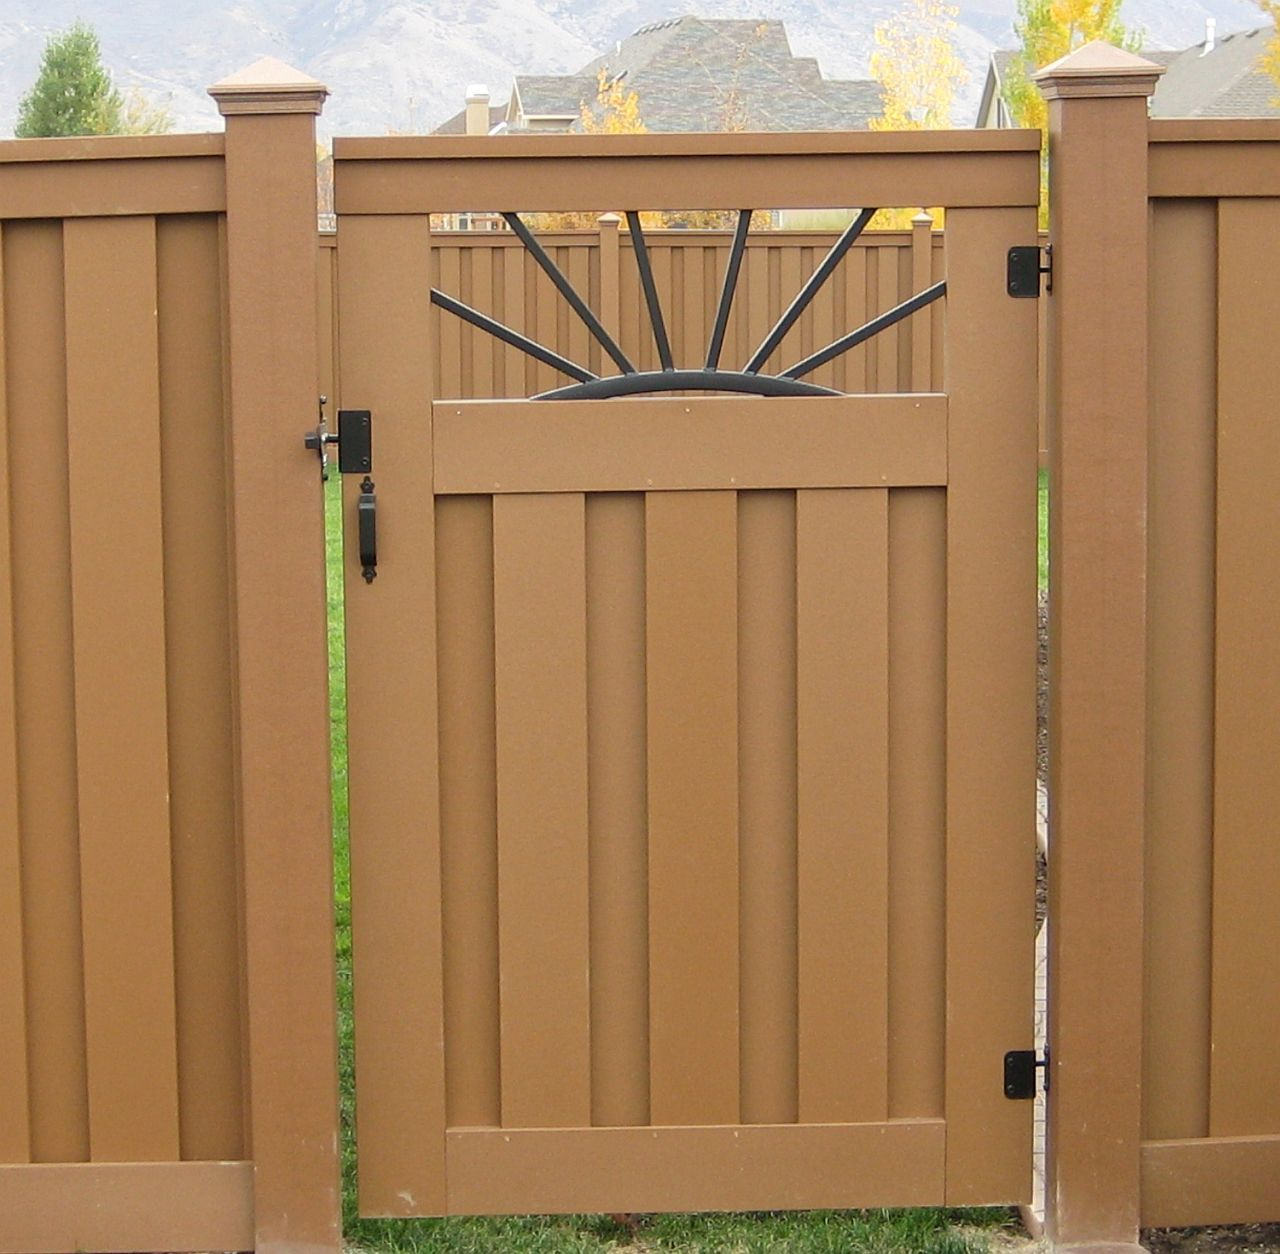 Fence Gate Design Ideas: Home Sweet Home